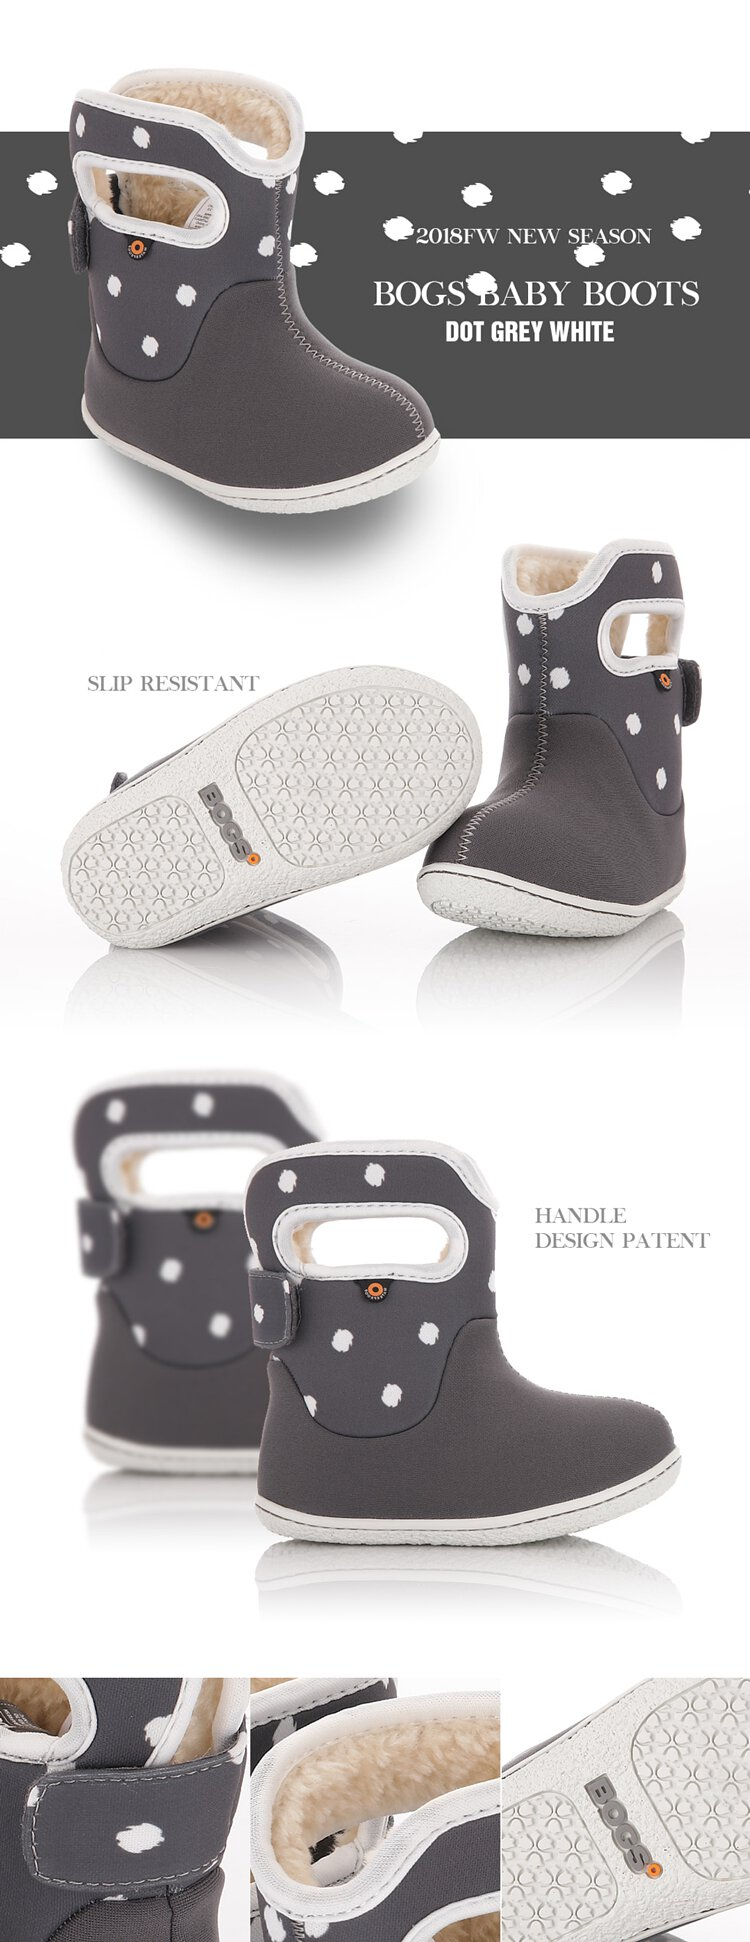 BOGS Baby Winter Boots ~ Dot Gray